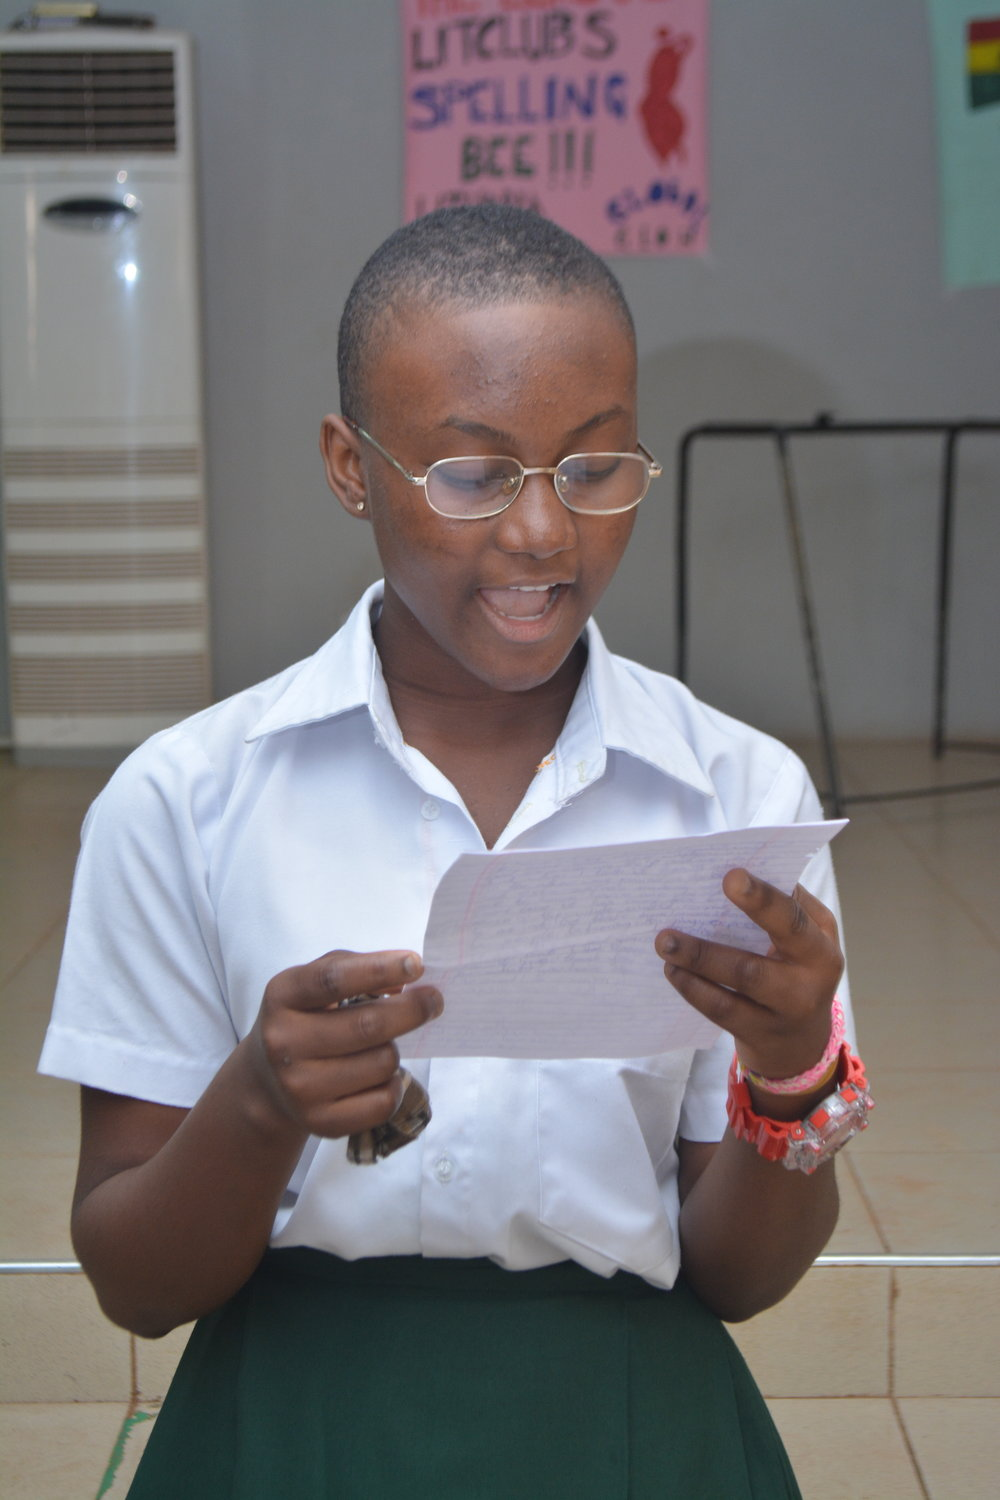 LitClub member Abubakari Raihana has become a leader in her school and her community.